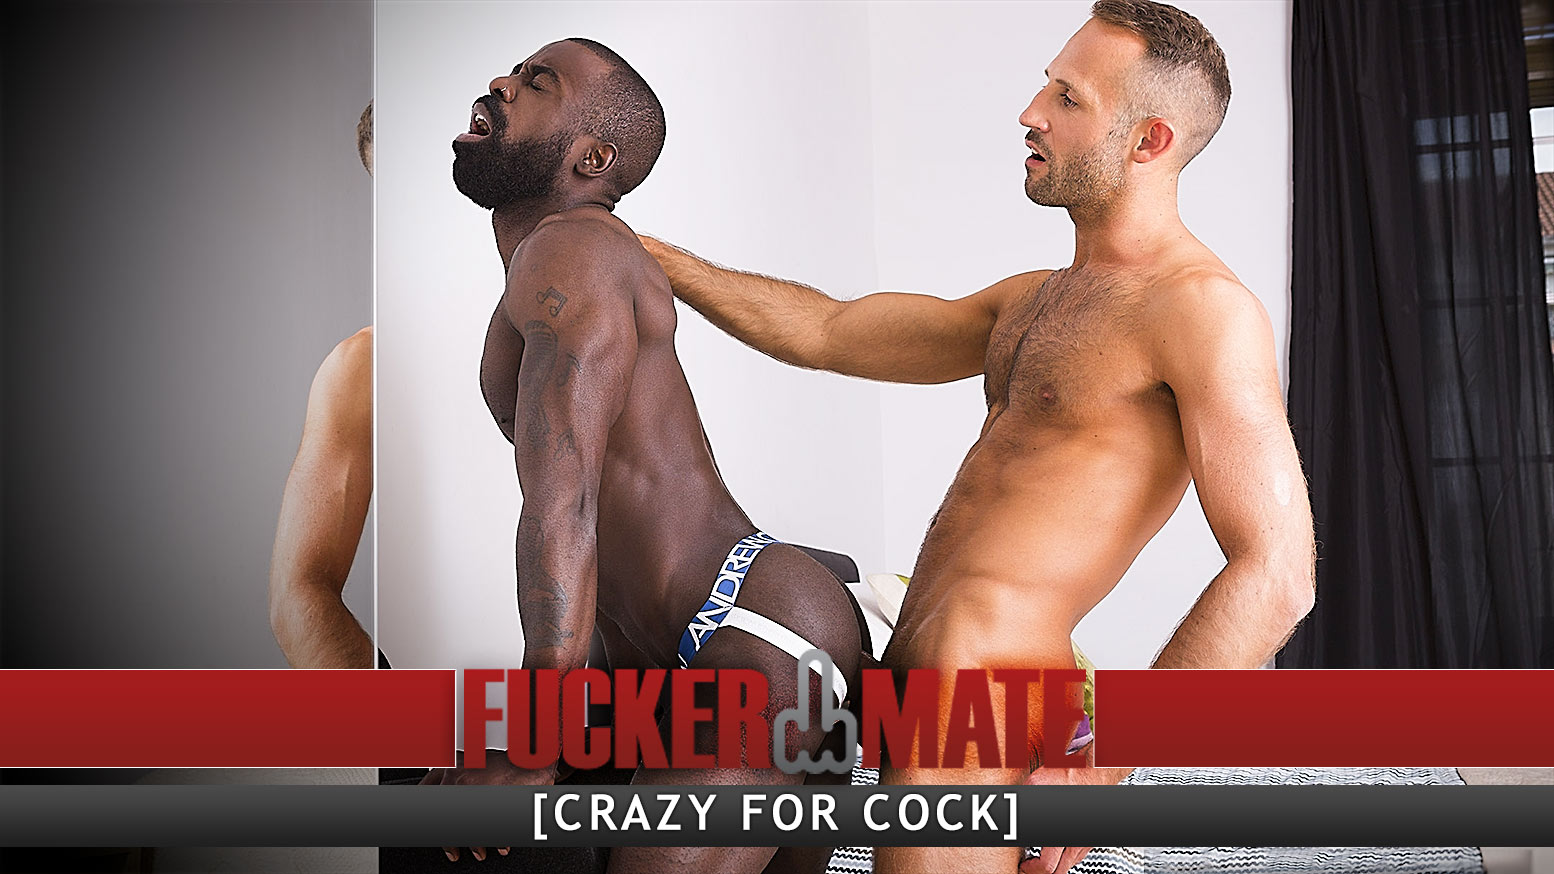 Crazy for your cock